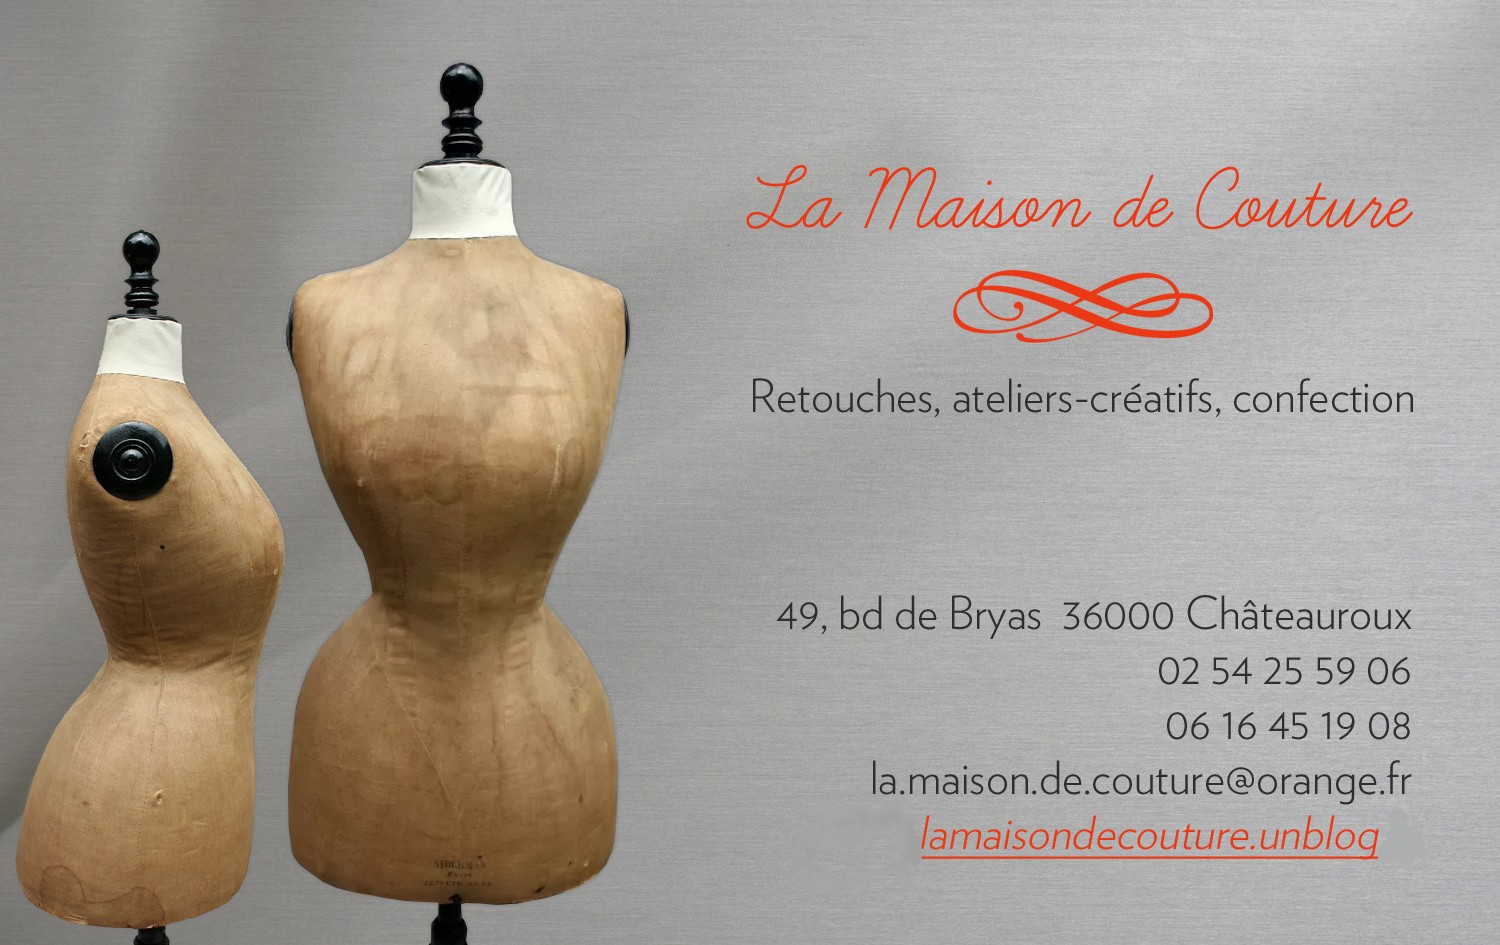 La maison de couture archives du blog la maison de for Couture a la maison